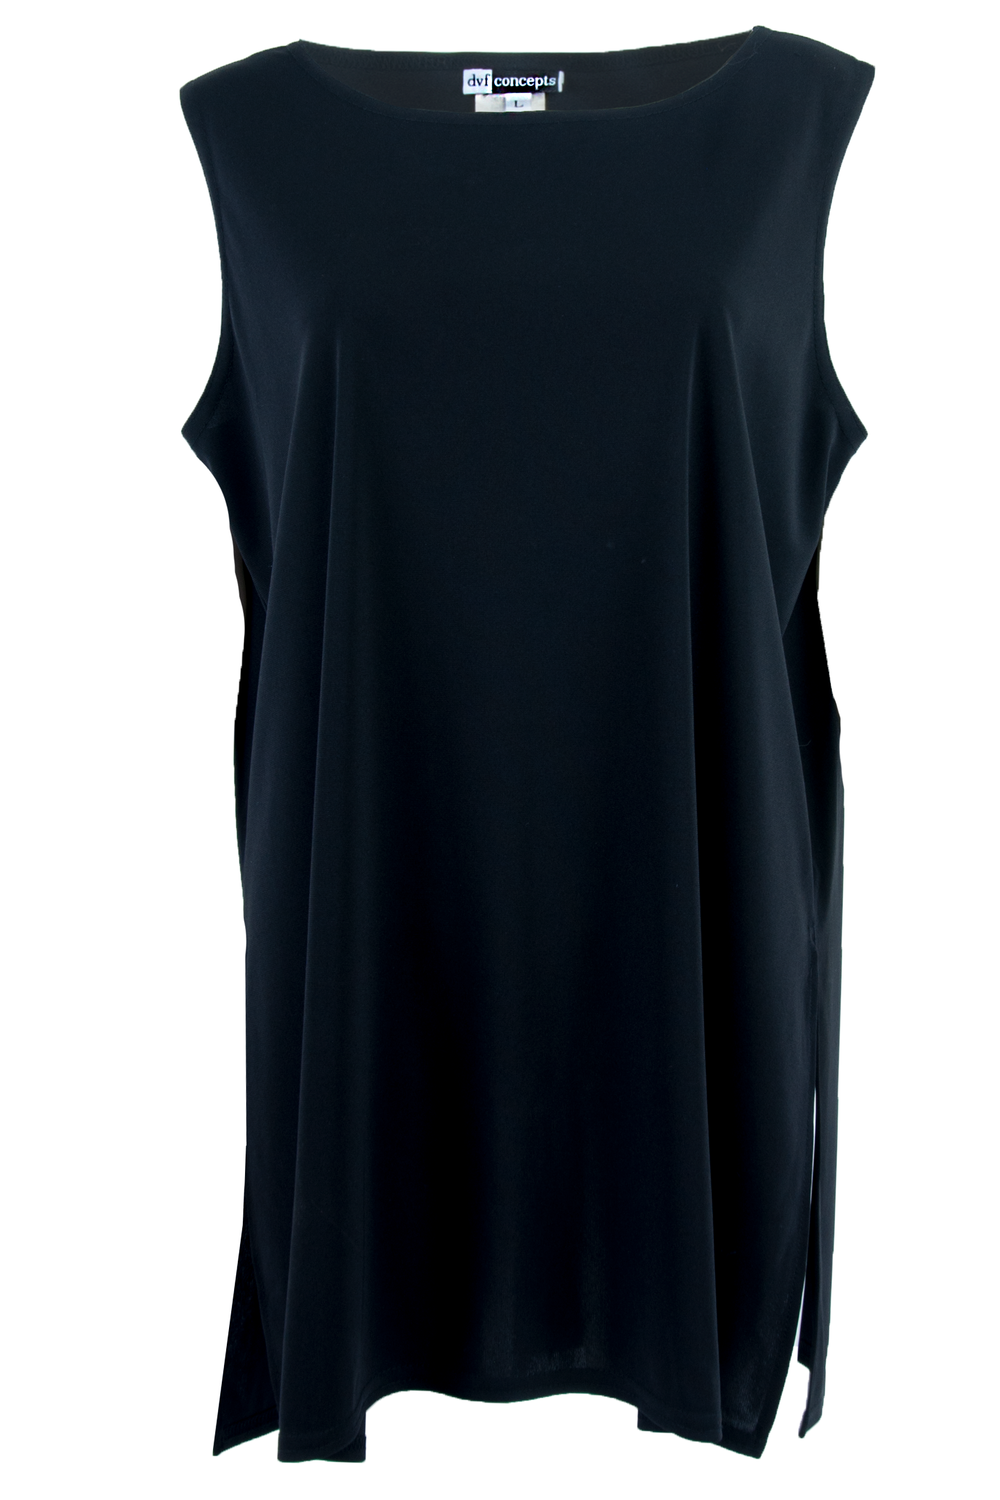 Front view of American made vintage DVF sleeveless little black dress with dropped armholes and high-split hem at sides.